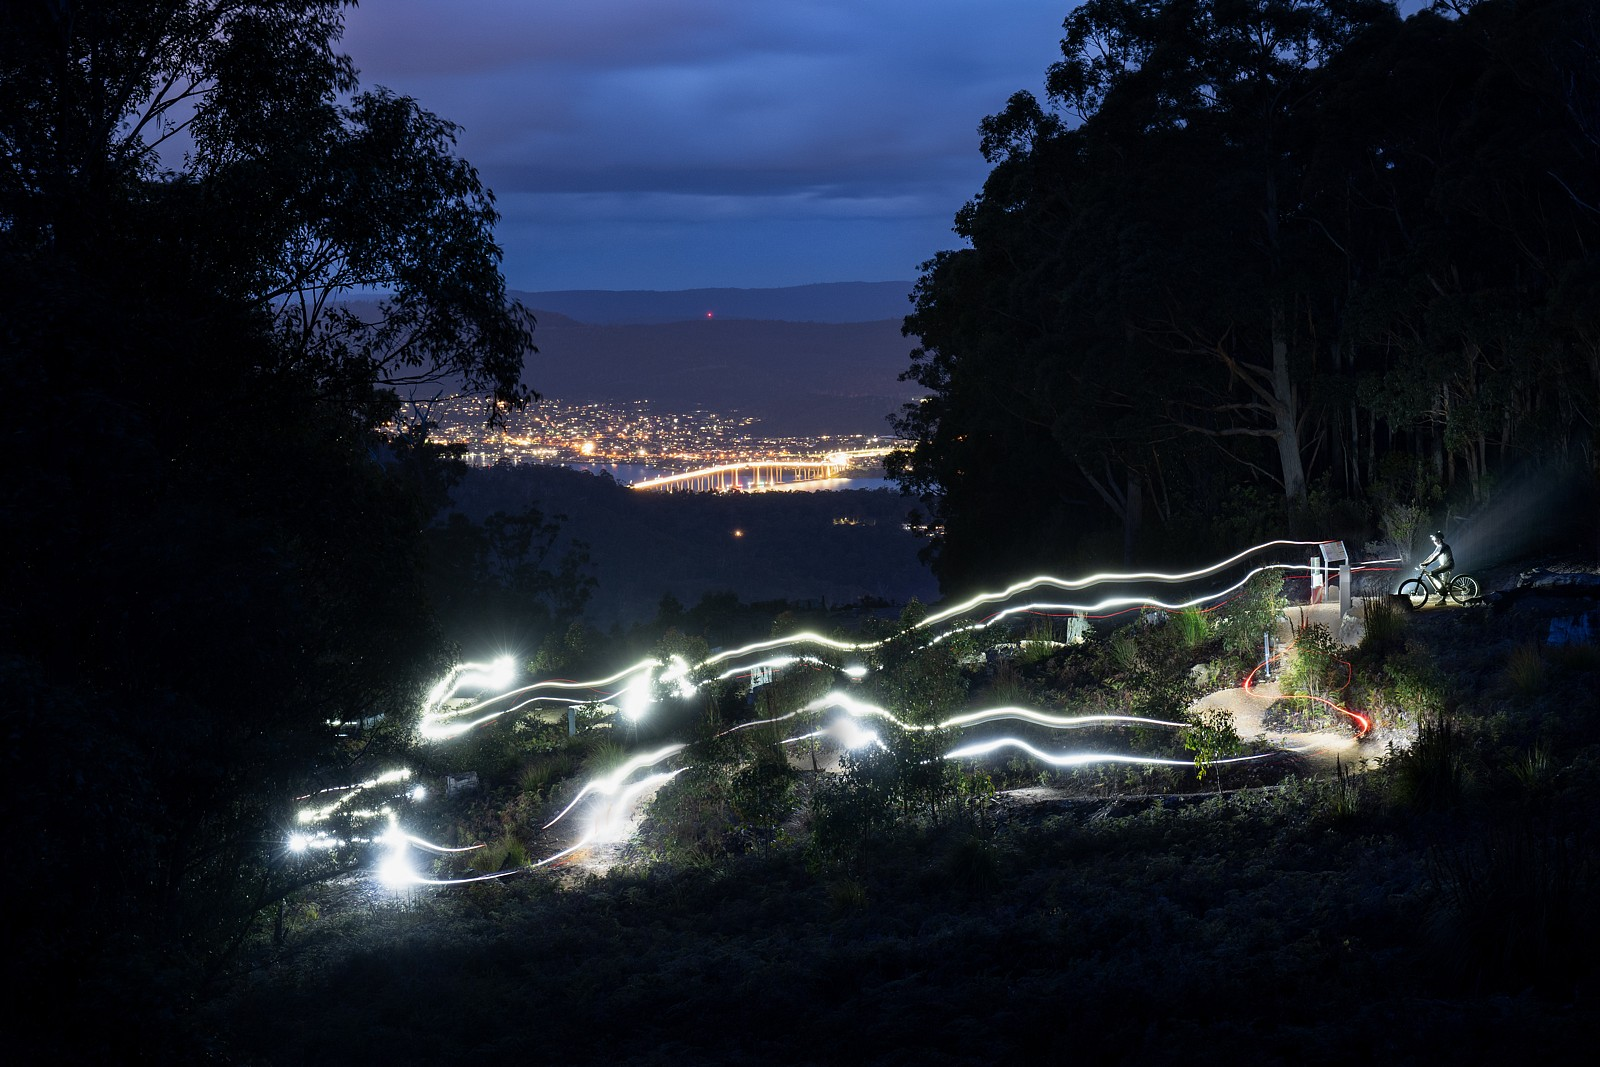 Electric night riding in the foothills of kunanyi - digitalhippie - Mountain Biking Pictures - Vital MTB